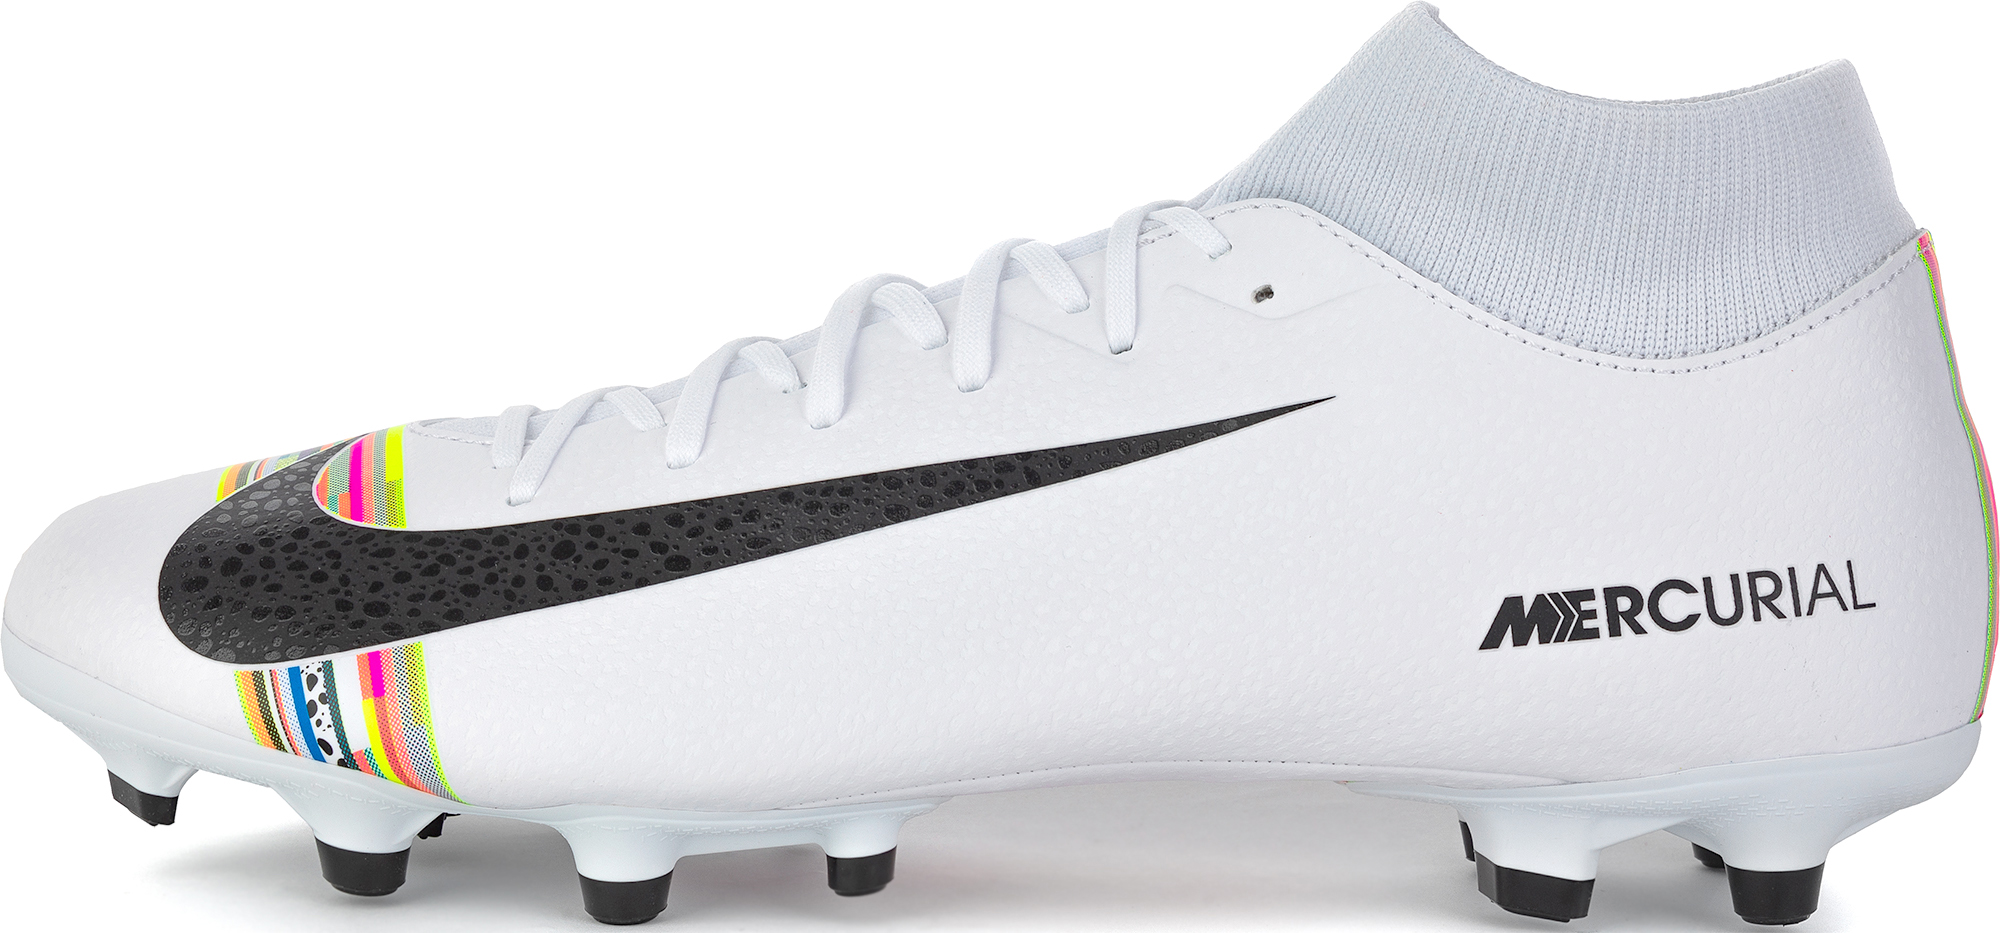 Nike Бутсы мужские Nike Mercurial Superfly 6 Academy CR7 FG/MG, размер 44